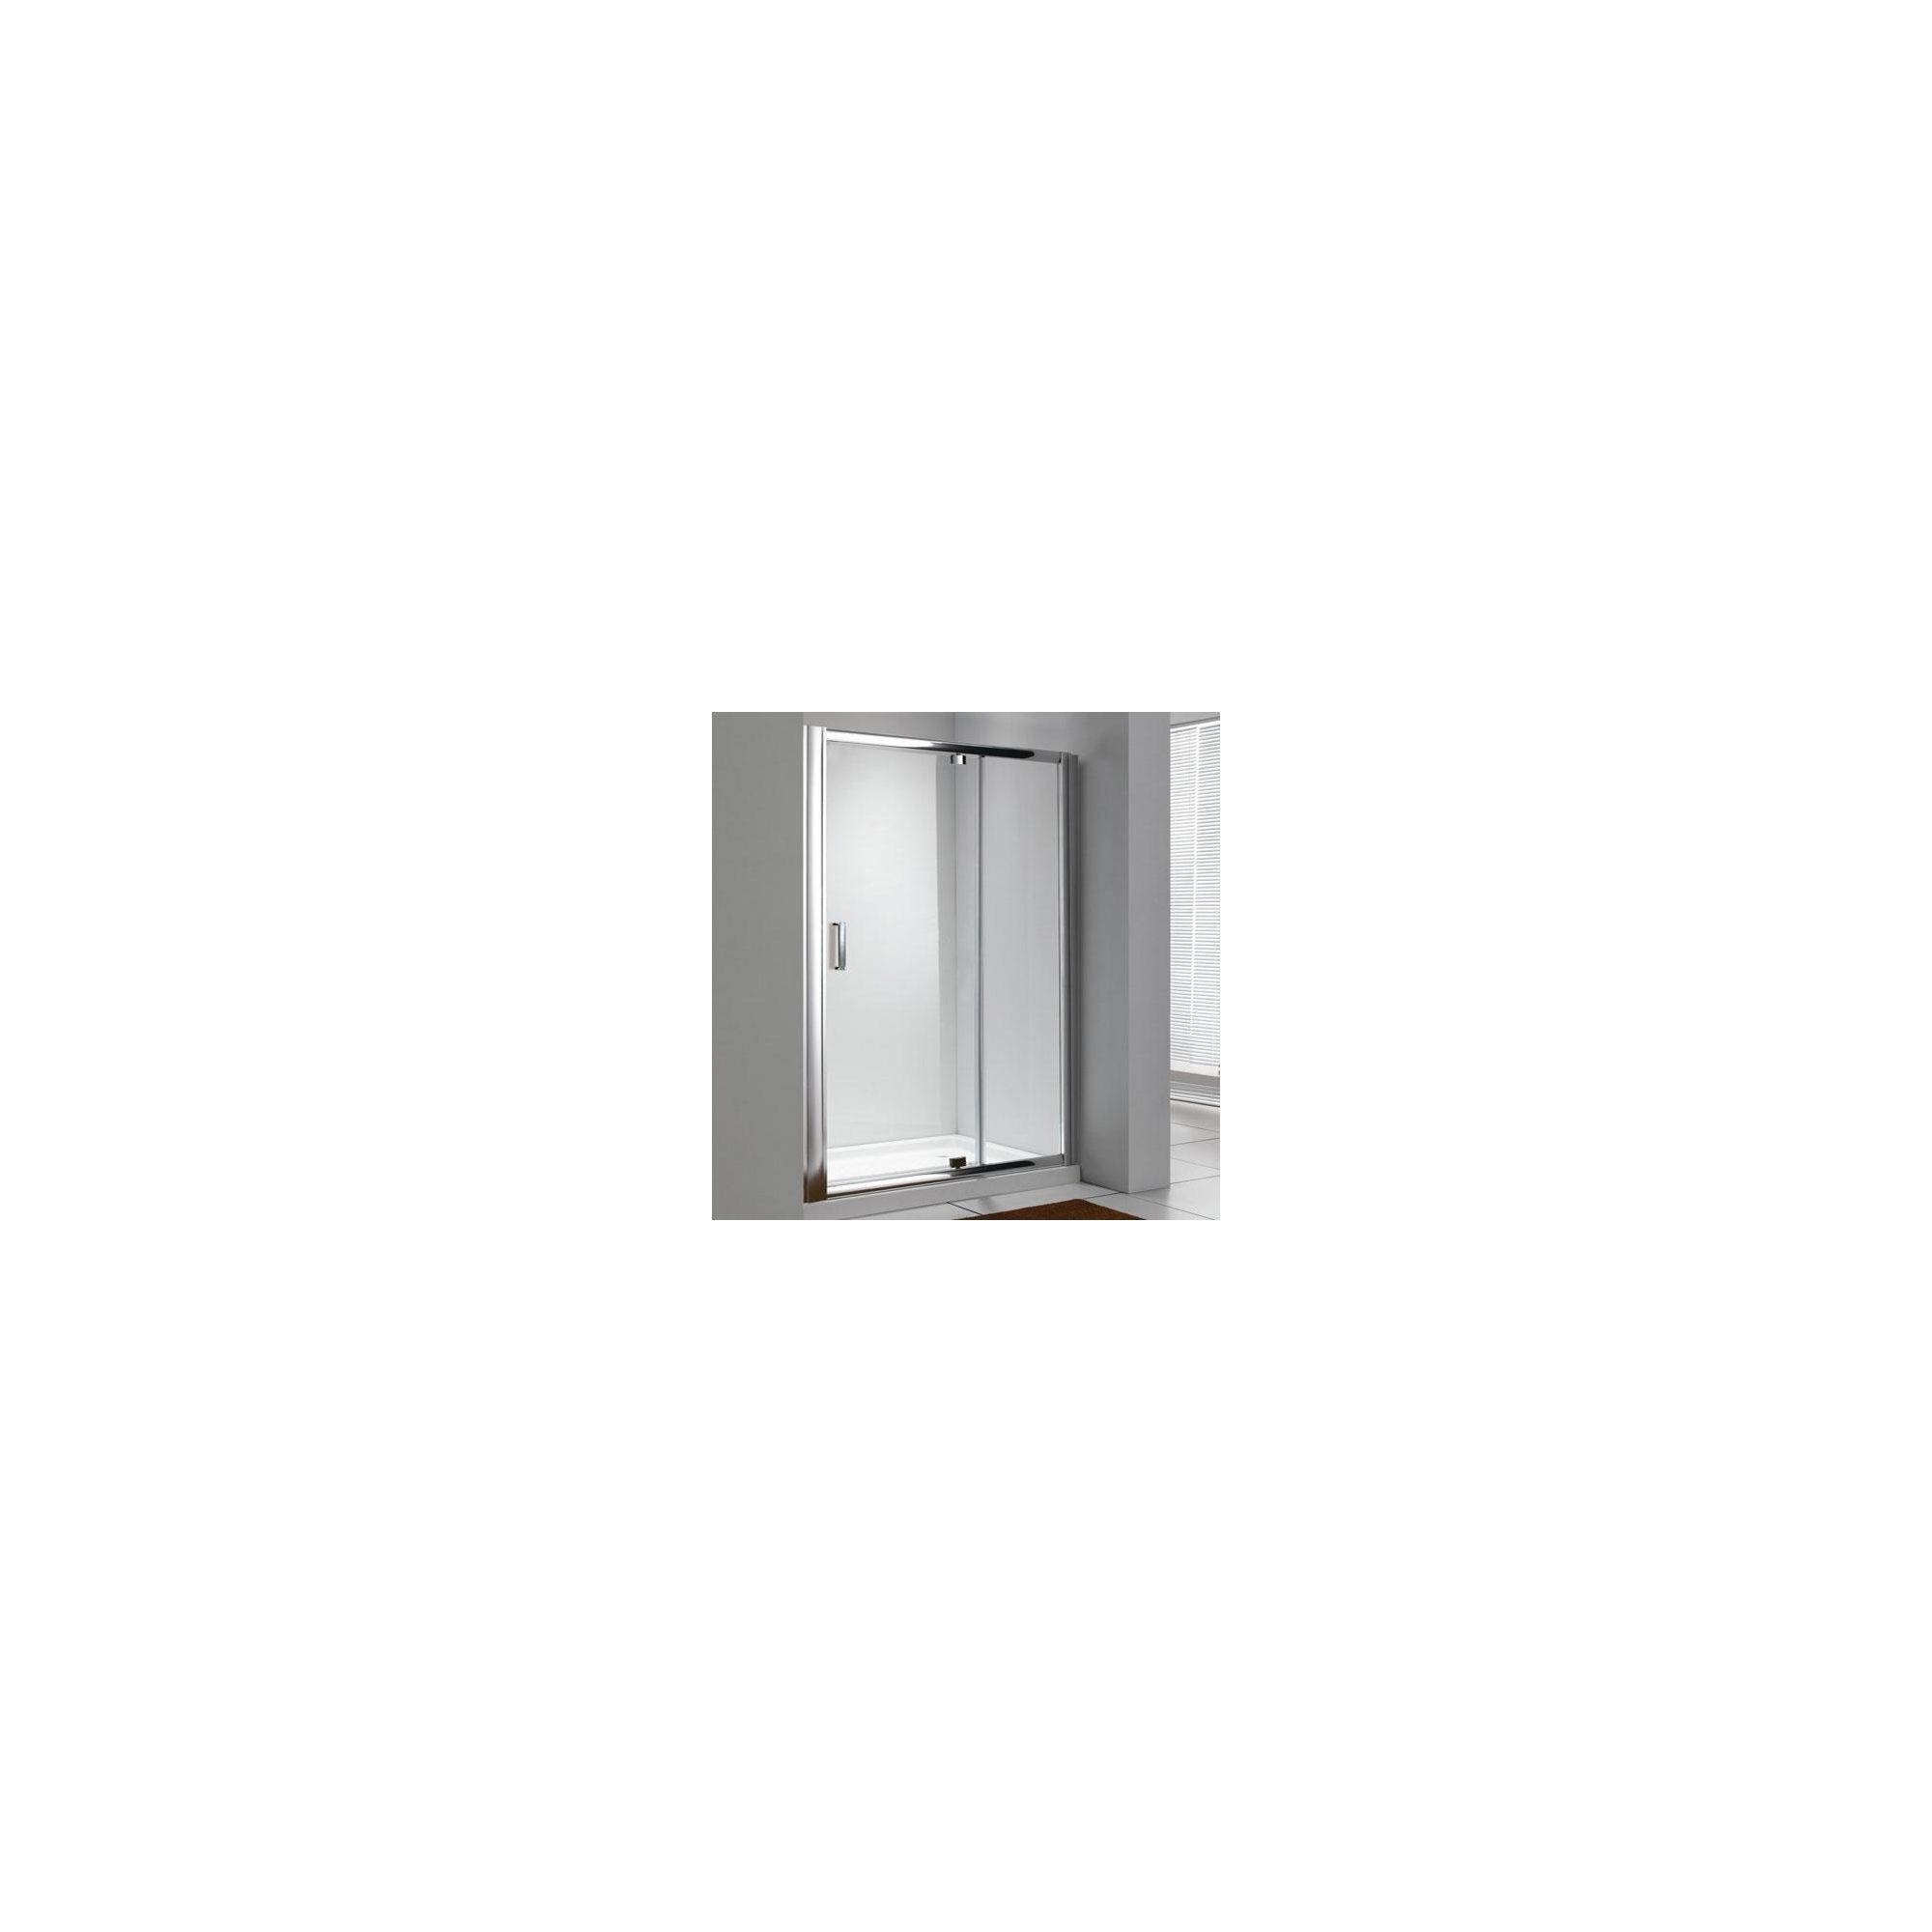 Duchy Style Pivot Door Shower Enclosure, 1100mm x 760mm, 6mm Glass, Low Profile Tray at Tesco Direct